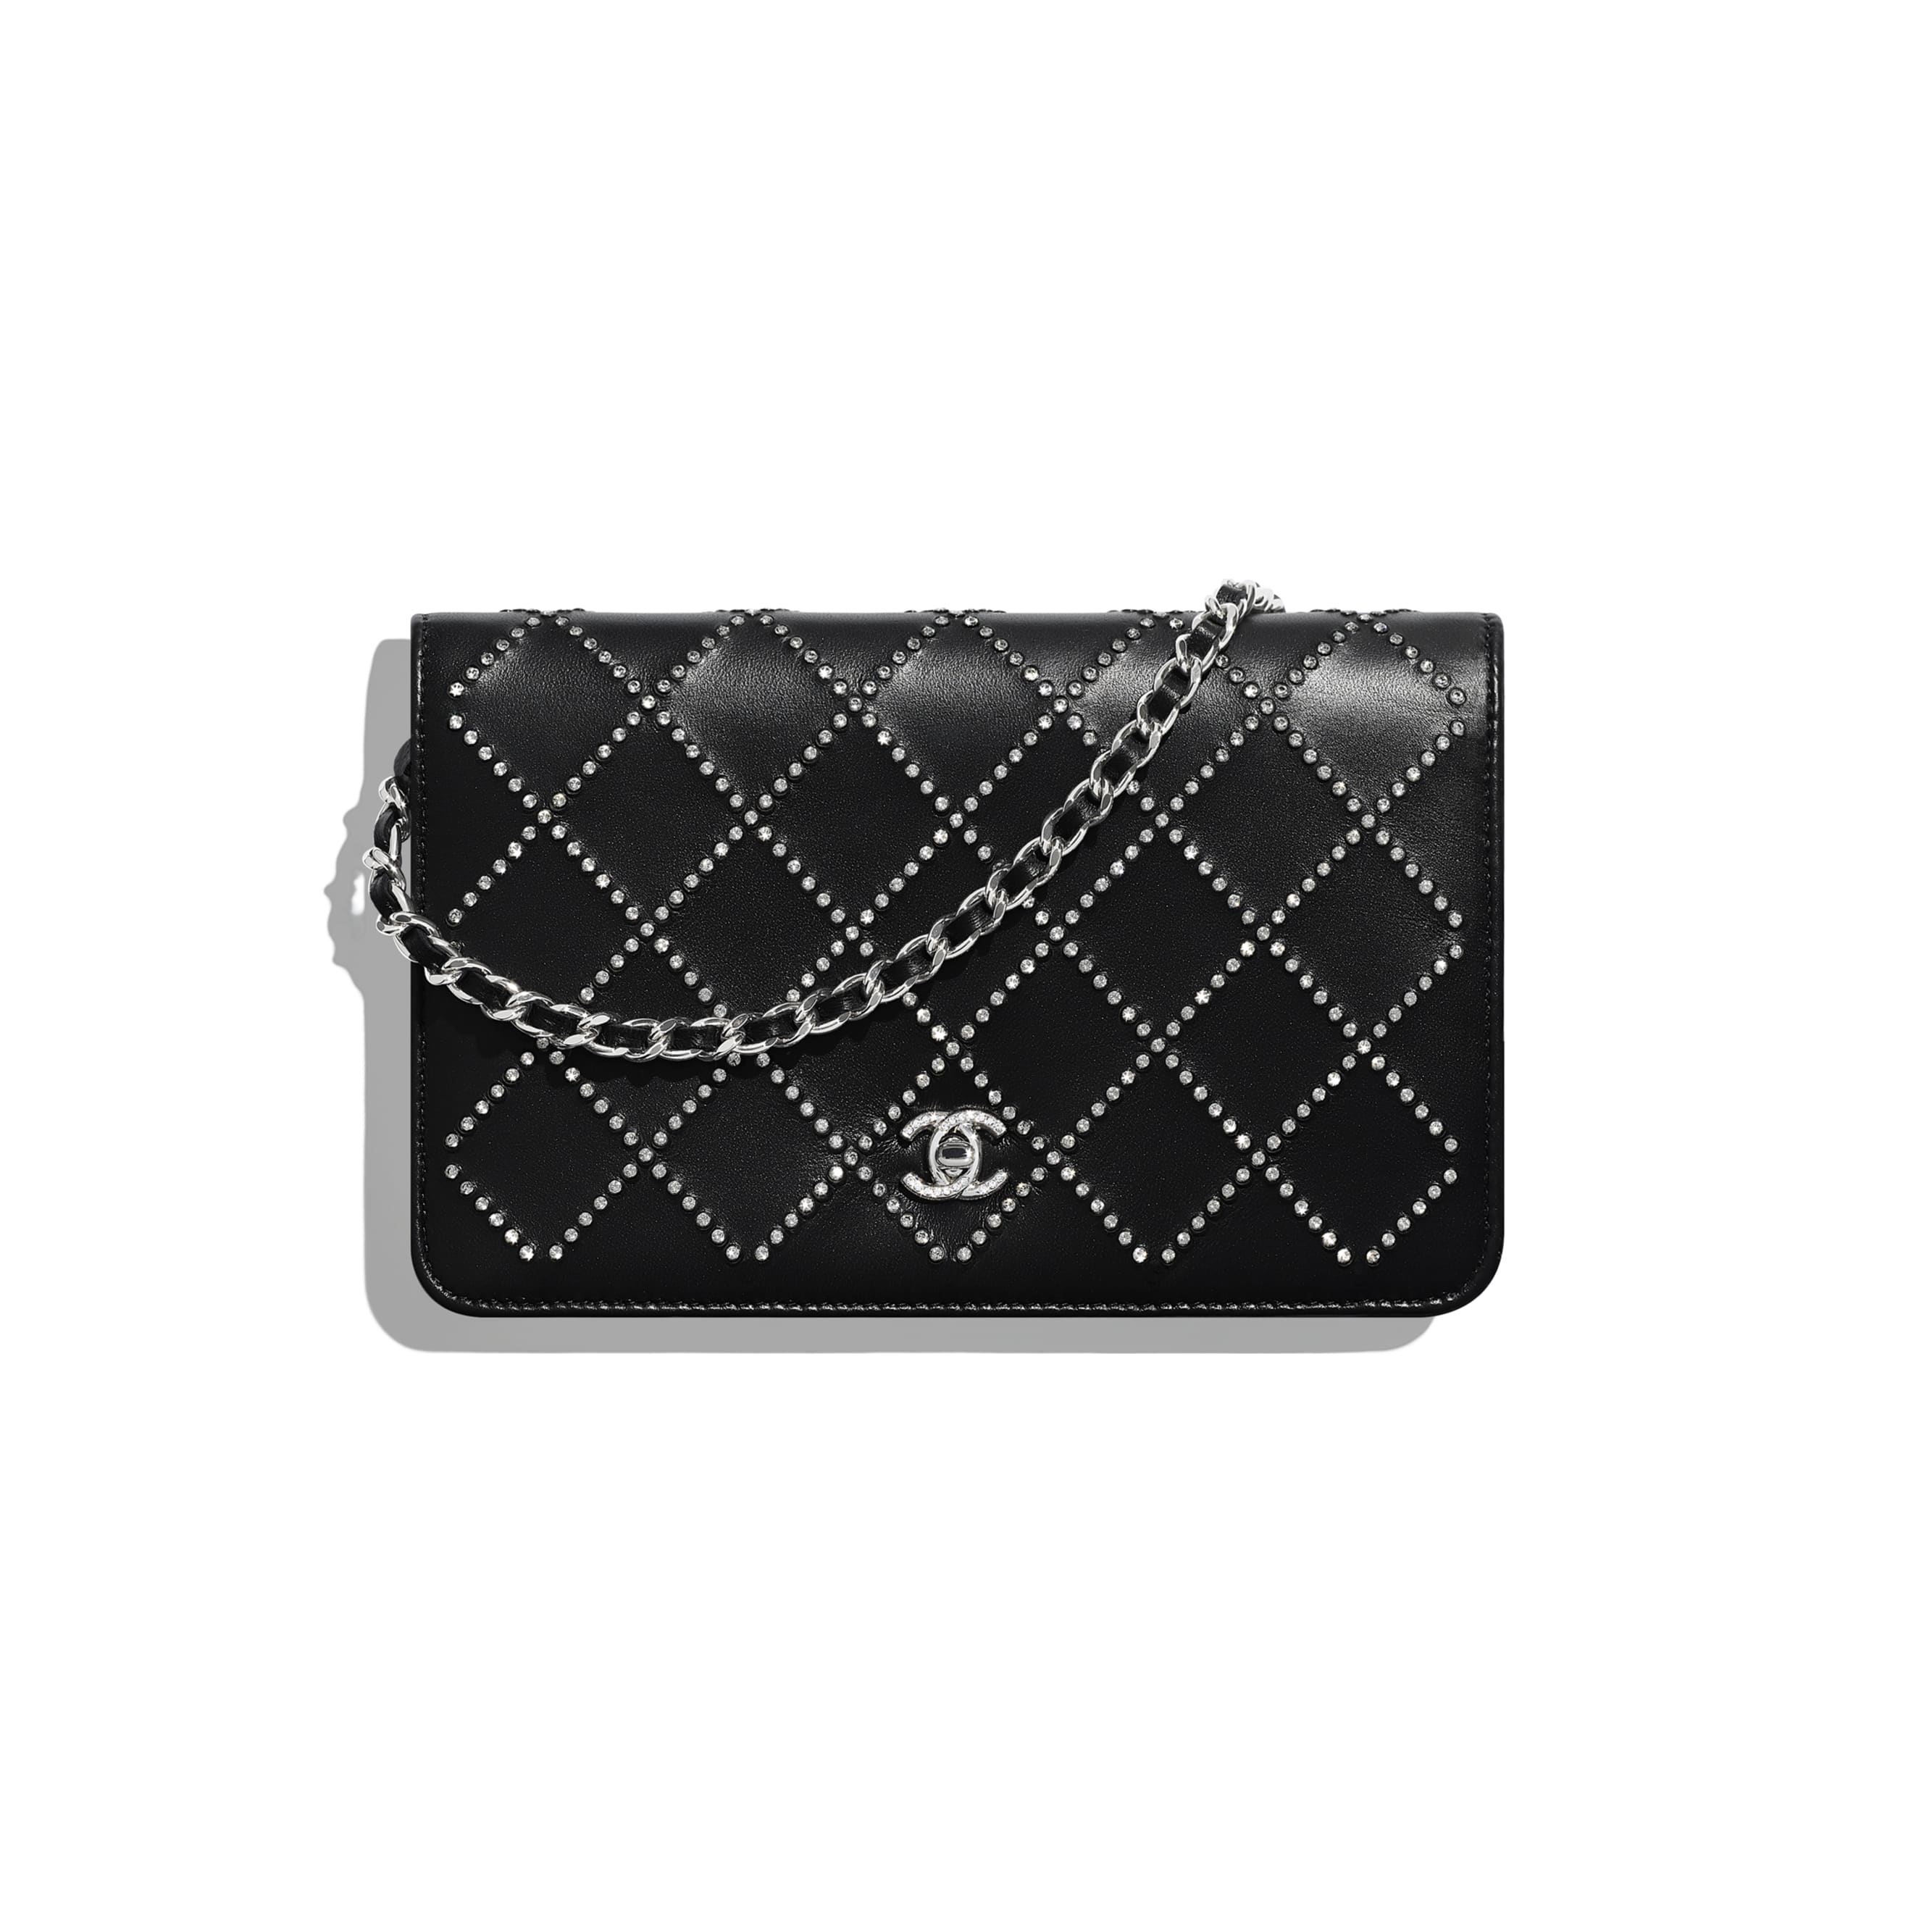 Wallet On Chain - Black - Iridescent Lambskin, Strass & Silver-Tone Metal - CHANEL - Default view - see standard sized version